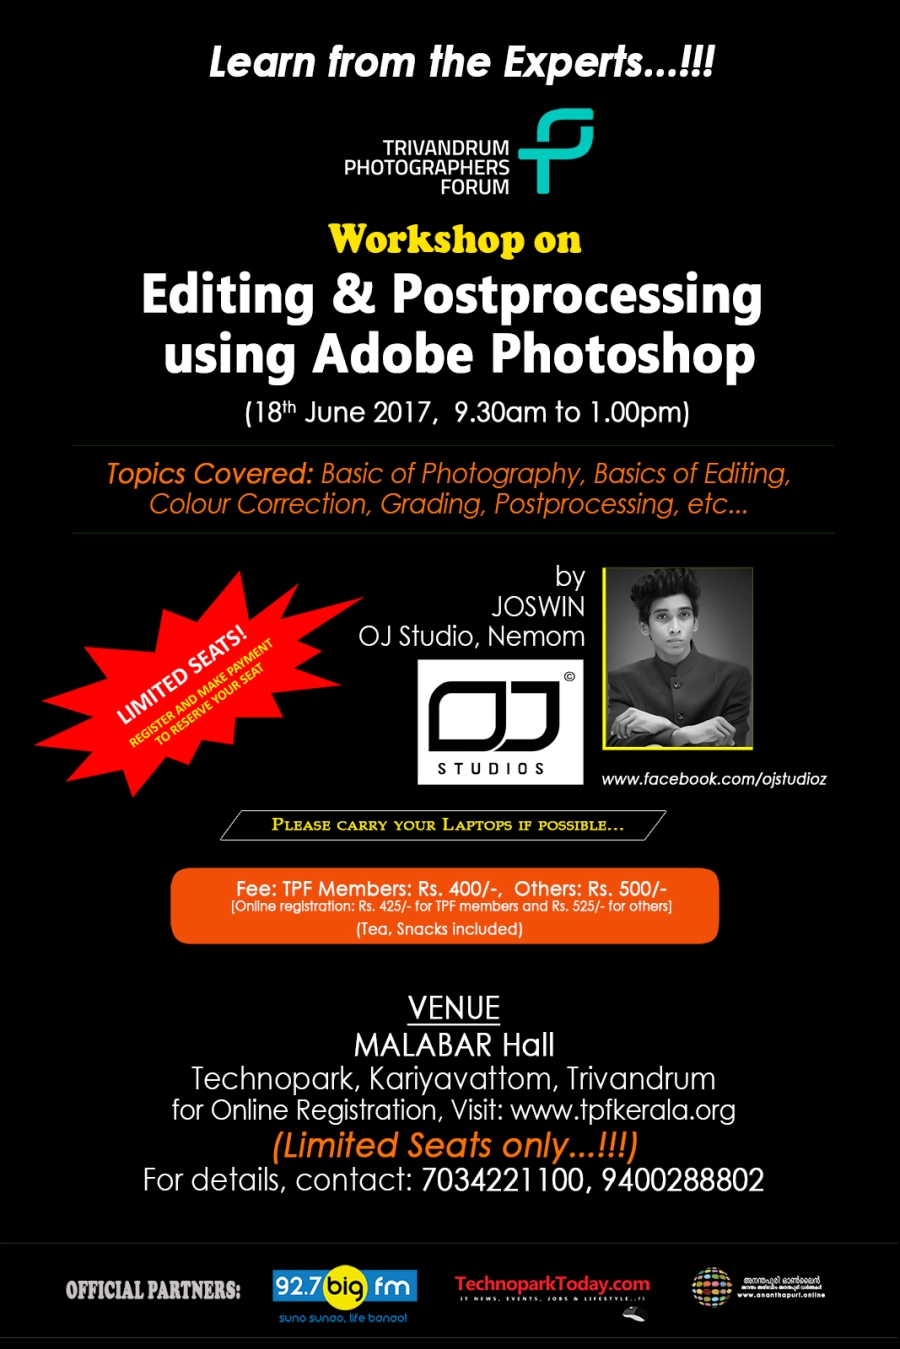 Workshop on Editing & Postprocessing